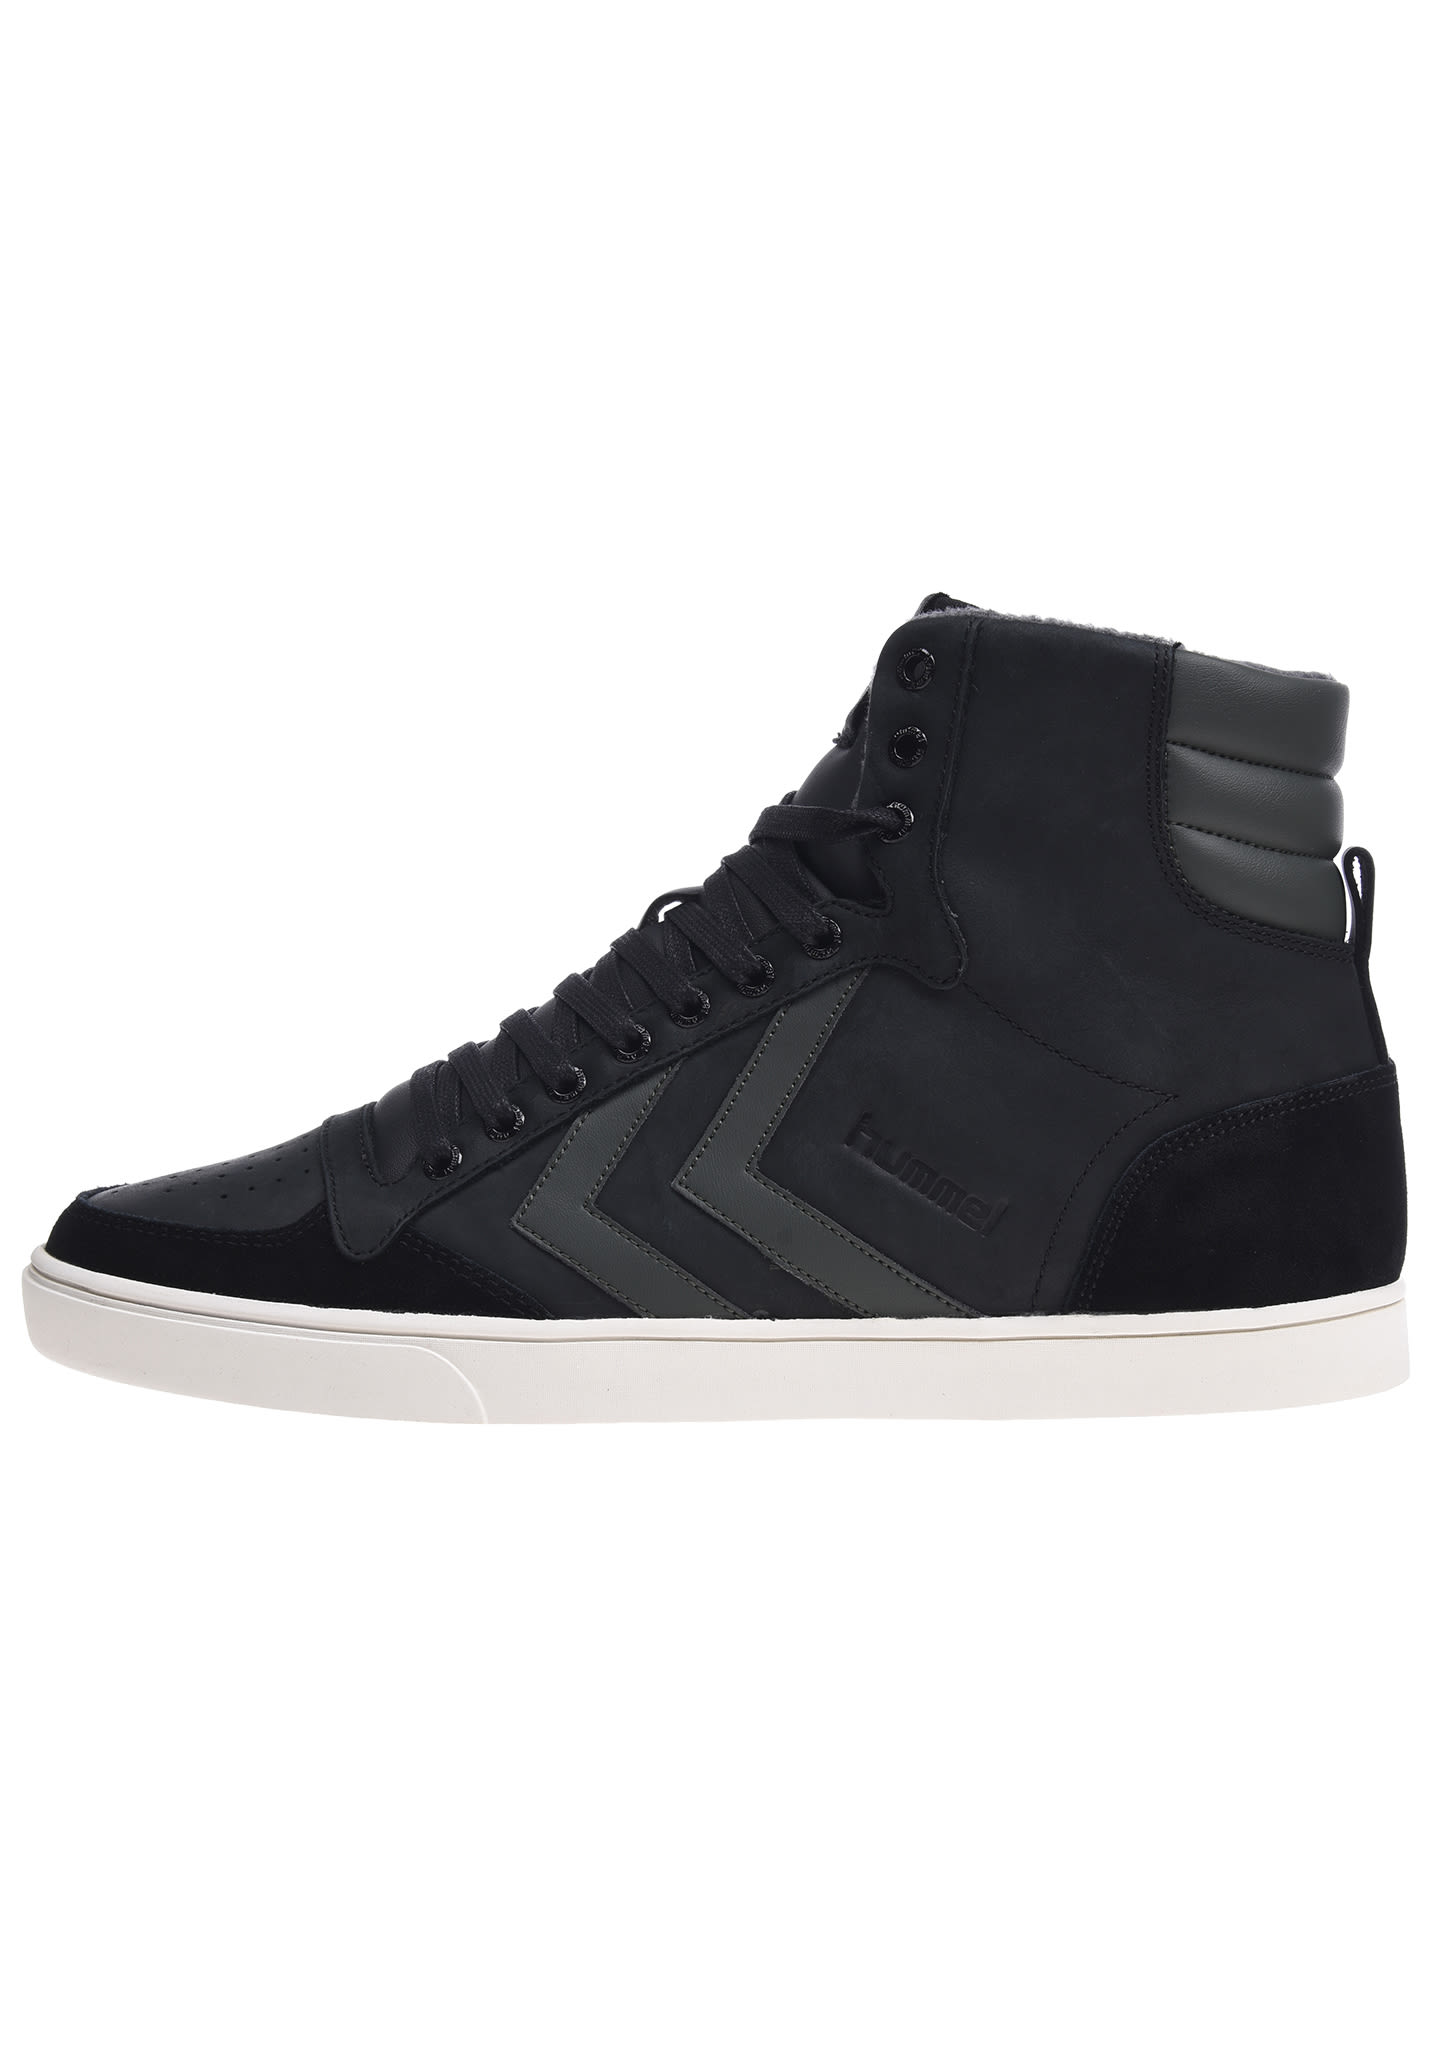 2ccb3098969 hummel Slimmer Stadil Duo Oiled High - Sneakers for Men - Black - Planet  Sports